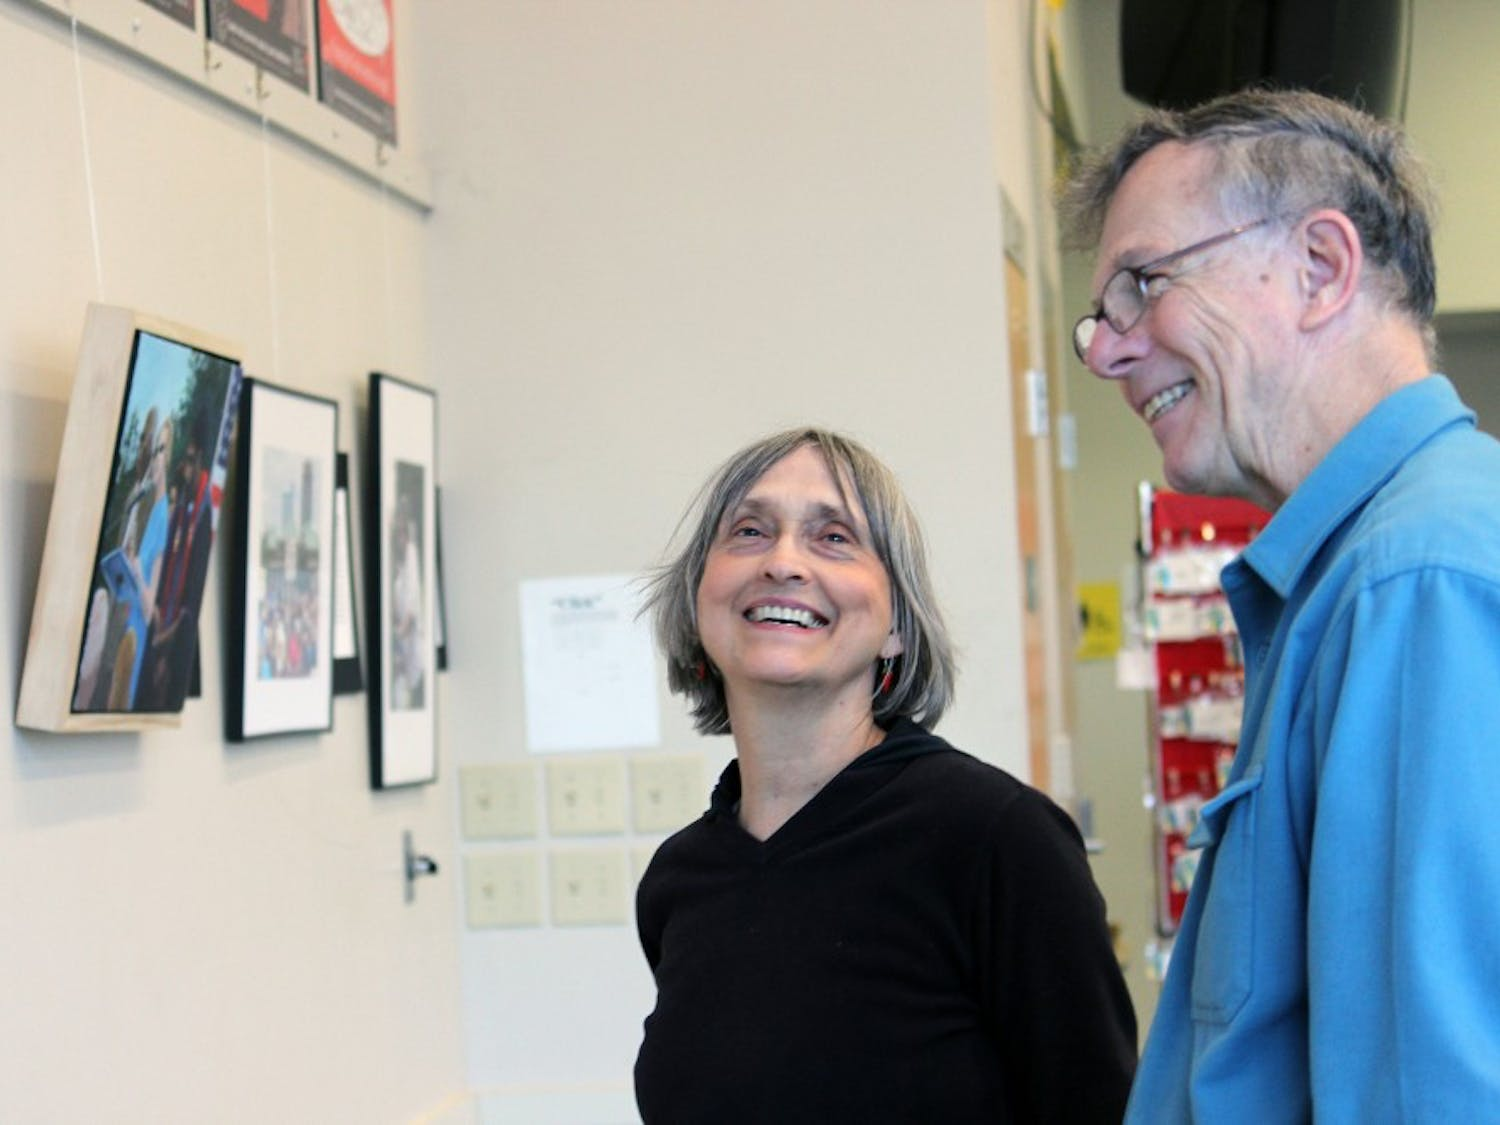 """Suzanne Lamport and one of the artists Dave Otto enjoy browsing the exhibition.  The activist exhibition of artist David Taylor, Harry Phillips, and photographer Dave Otto is called """"Images of Moral Mondays"""", which displays artwork of the ongoing speeches and protests of major issues, including unemployment, voting rights, health care, education, and many more."""